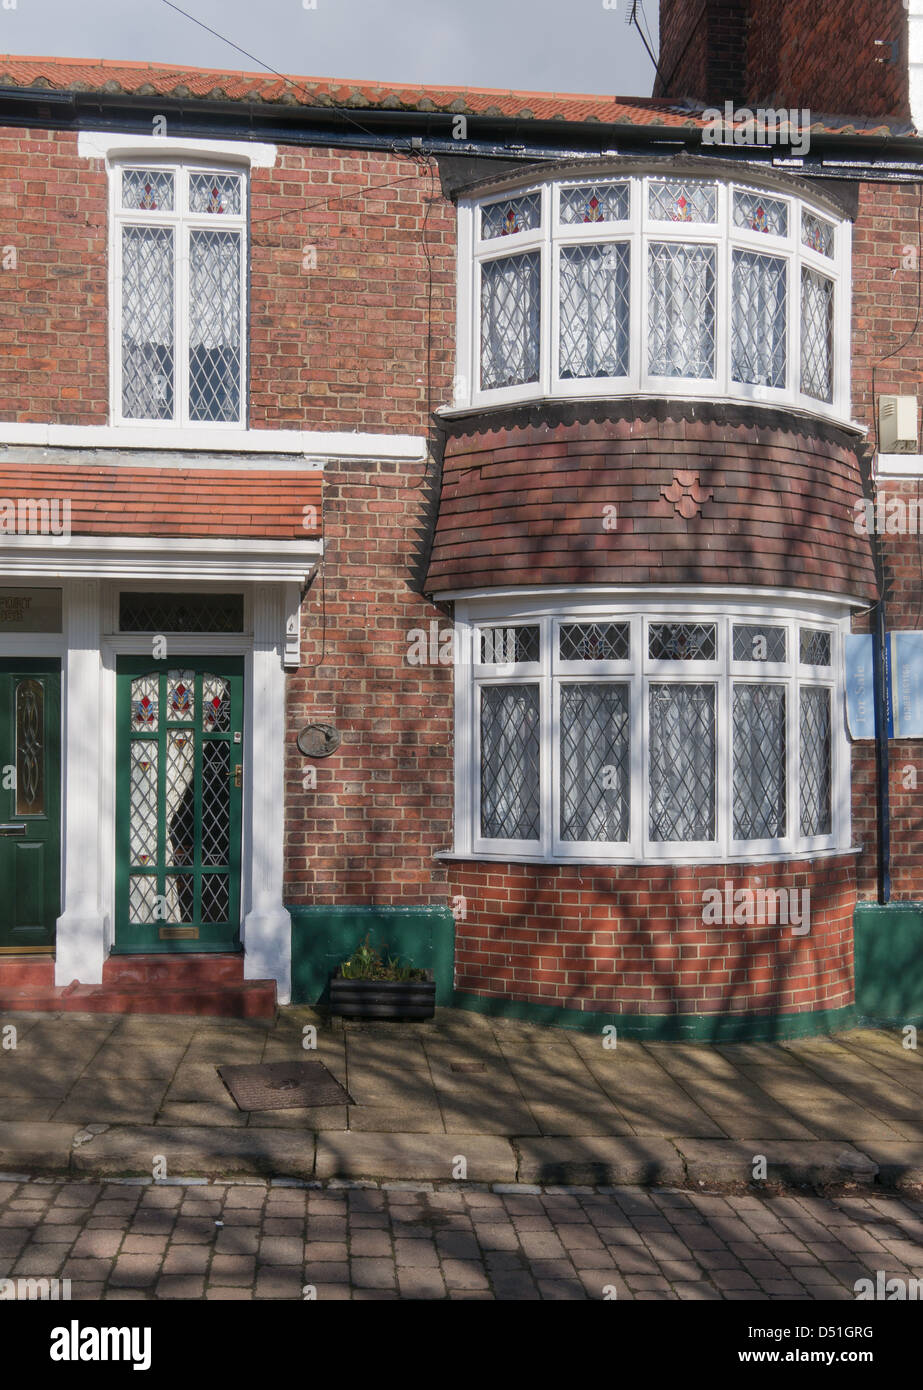 1930s style terraced house with leaded bay windows Bishop Auckland, north east England, UK - Stock Image